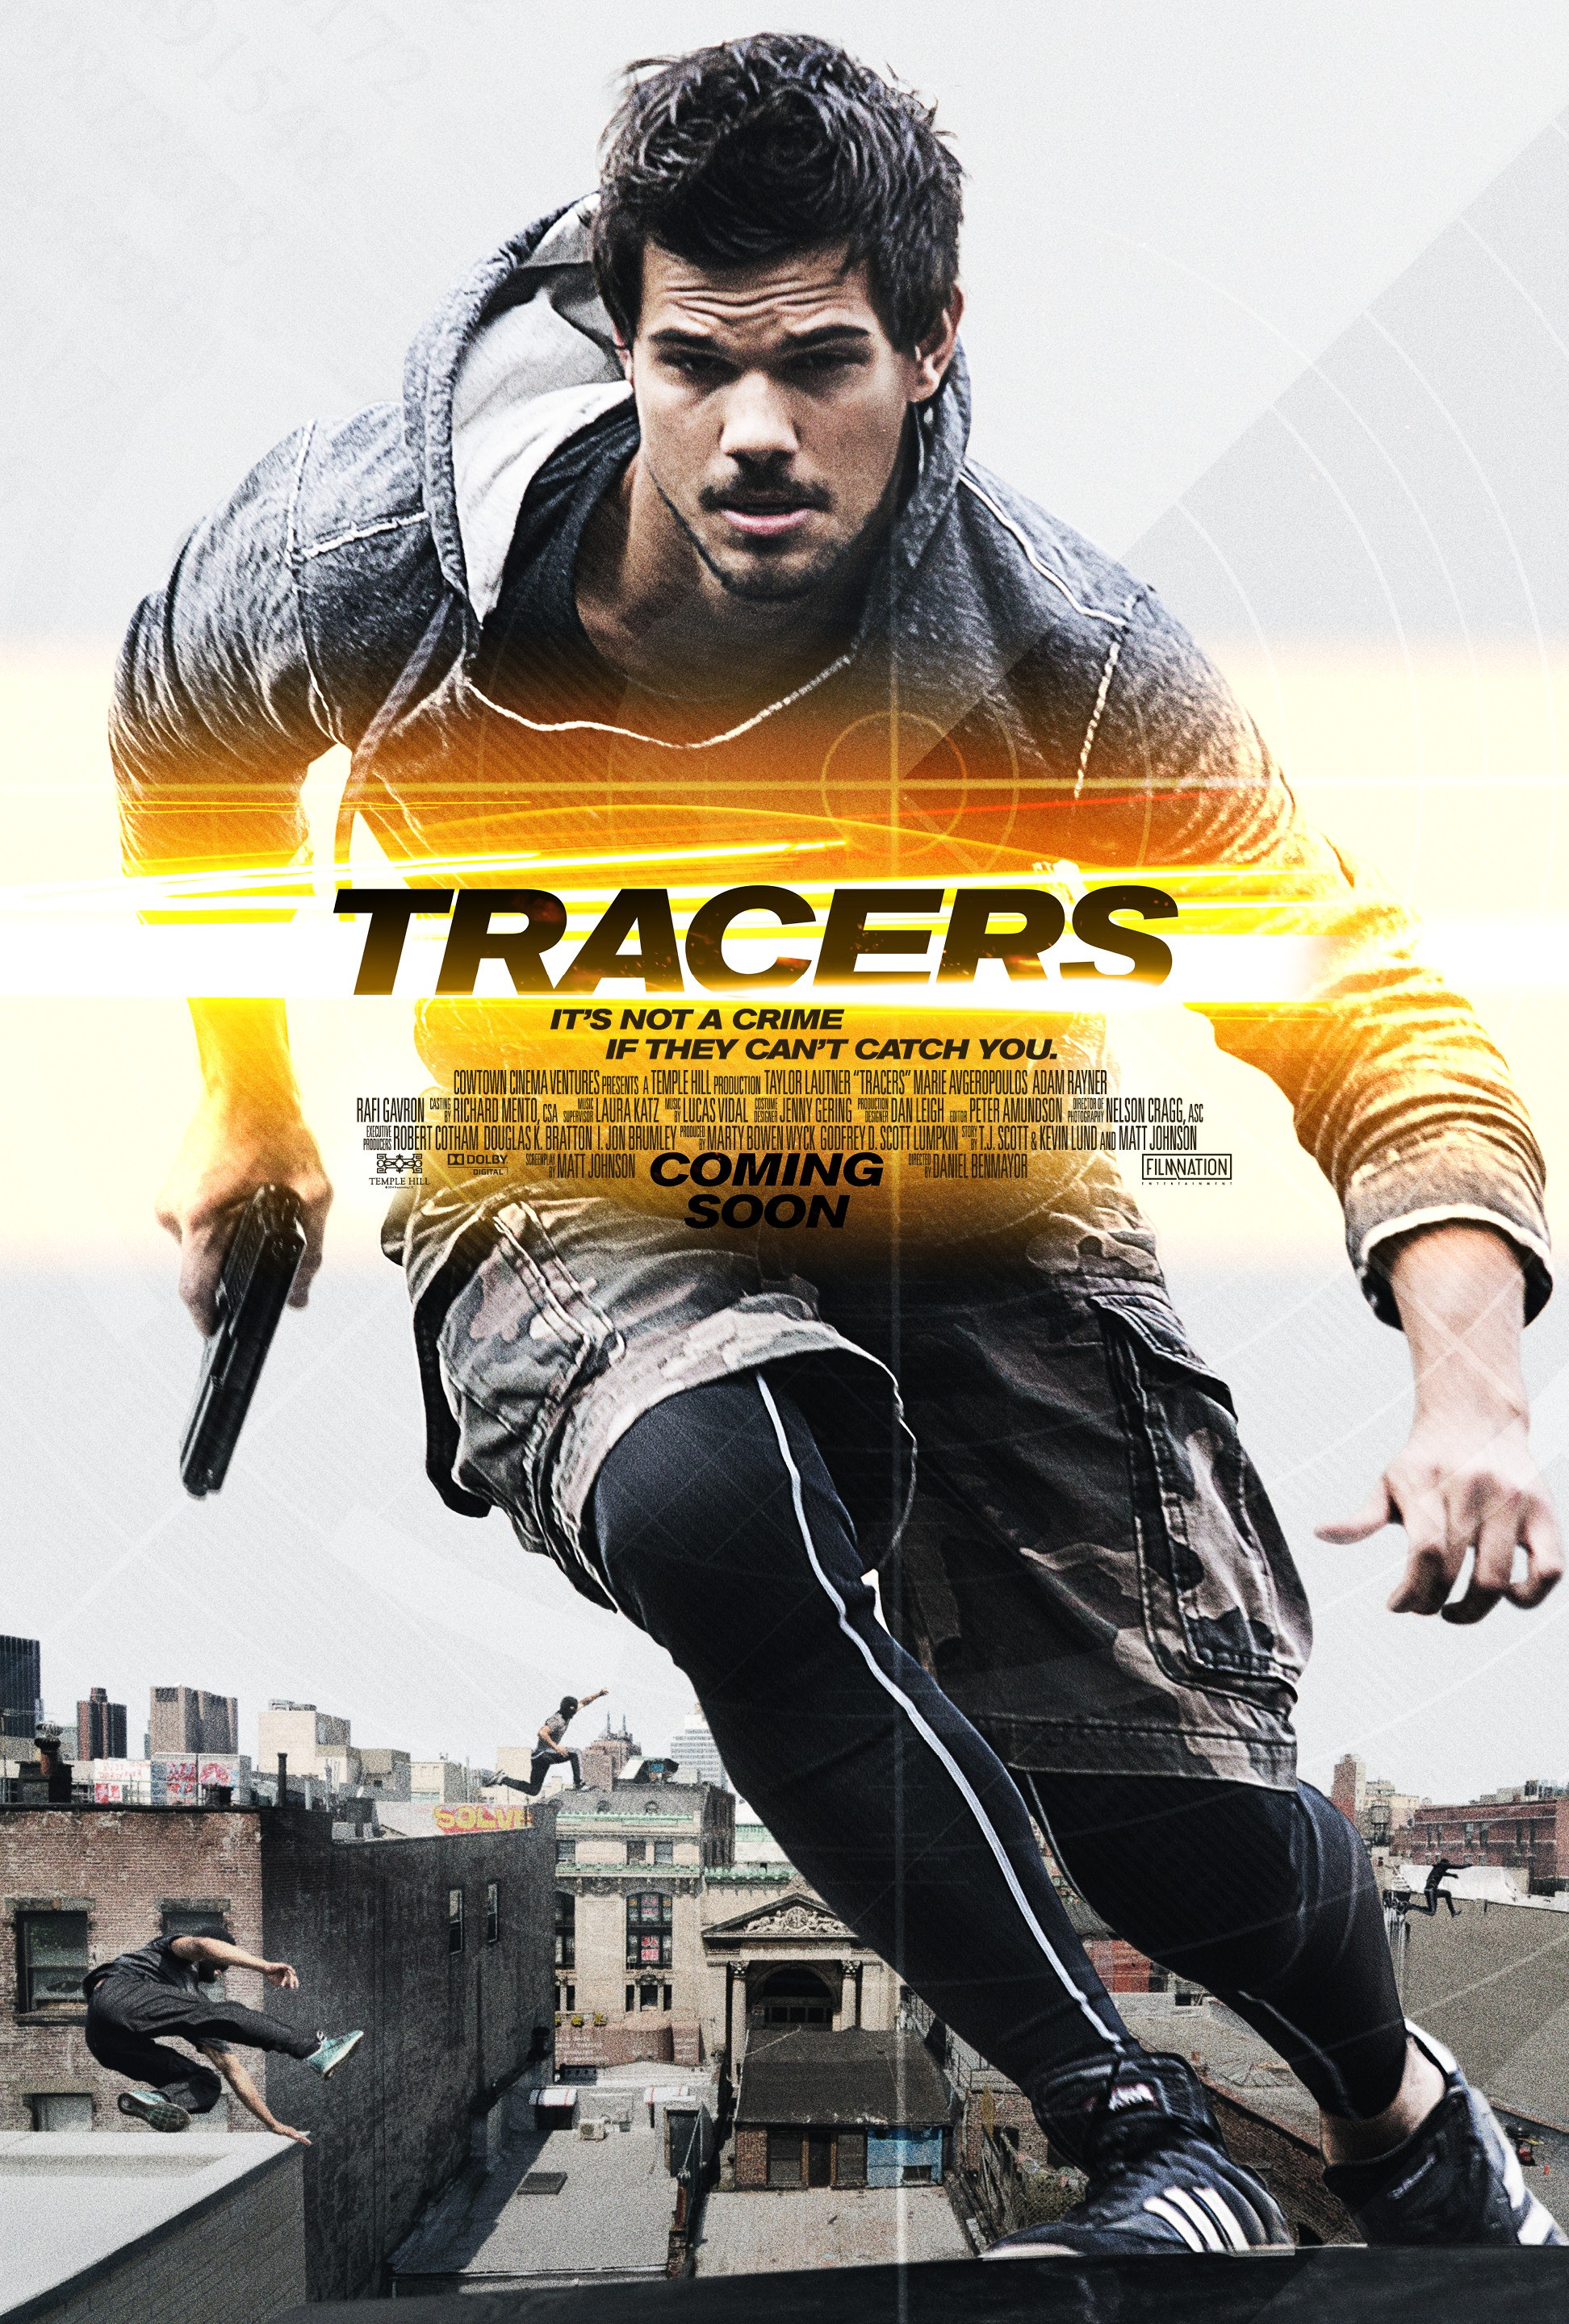 TRACERS-Official Poster XXLG-26NOVEMBRO2014-00